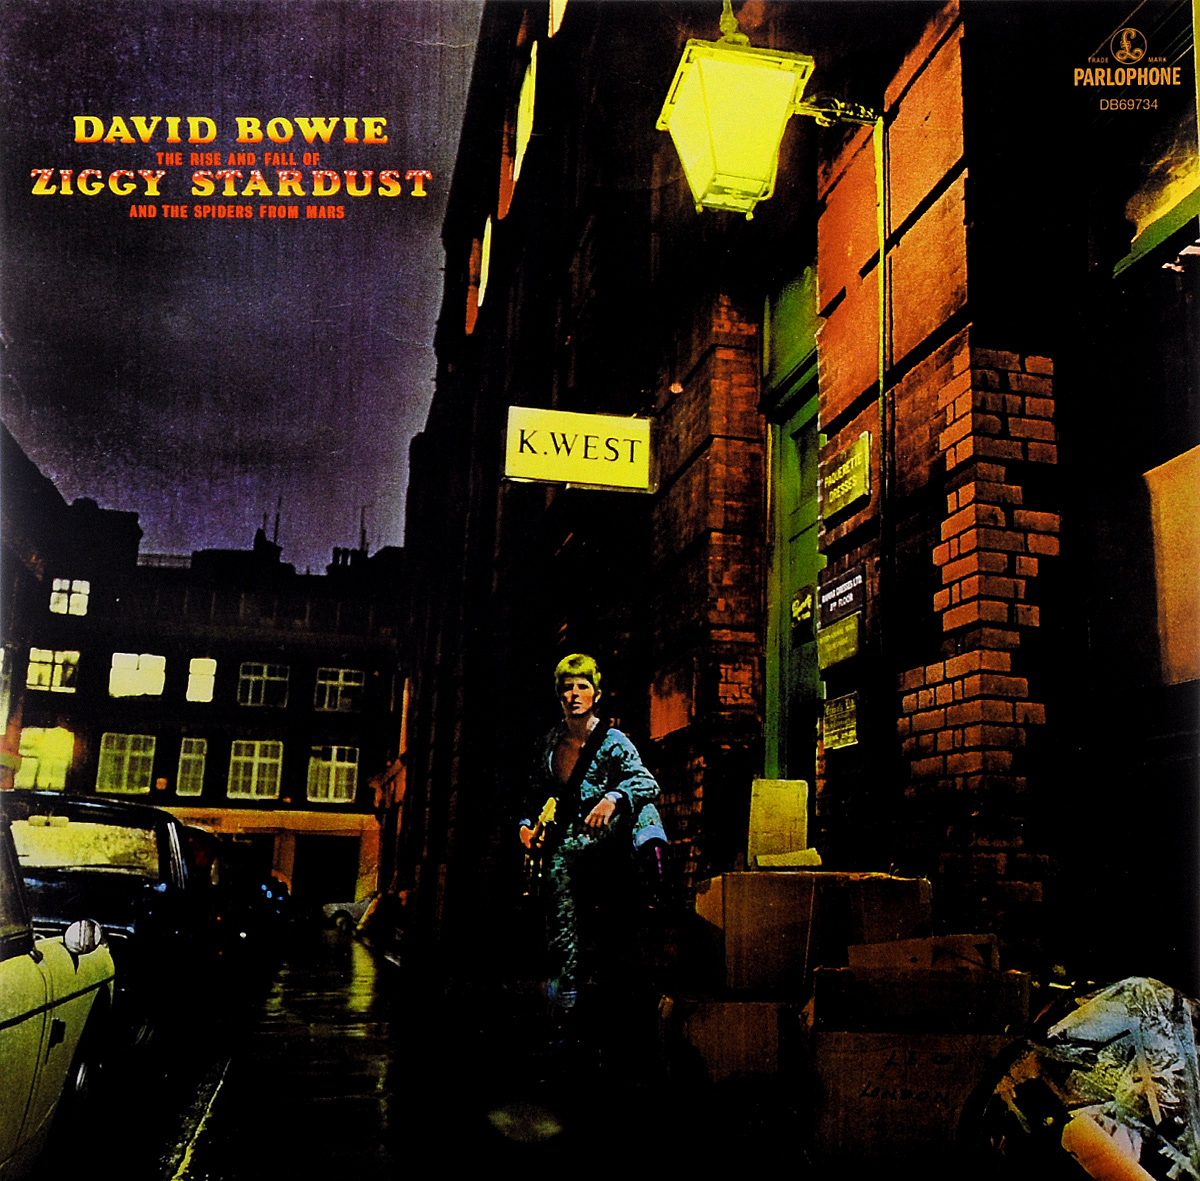 Дэвид Боуи David Bowie. The Rise And Fall Of Ziggy Stardust And The Spiders From Mars (LP) david bowie david bowie ziggy stardust and the spiders from mars the motion picture soundtrack 2 lp 180 gr